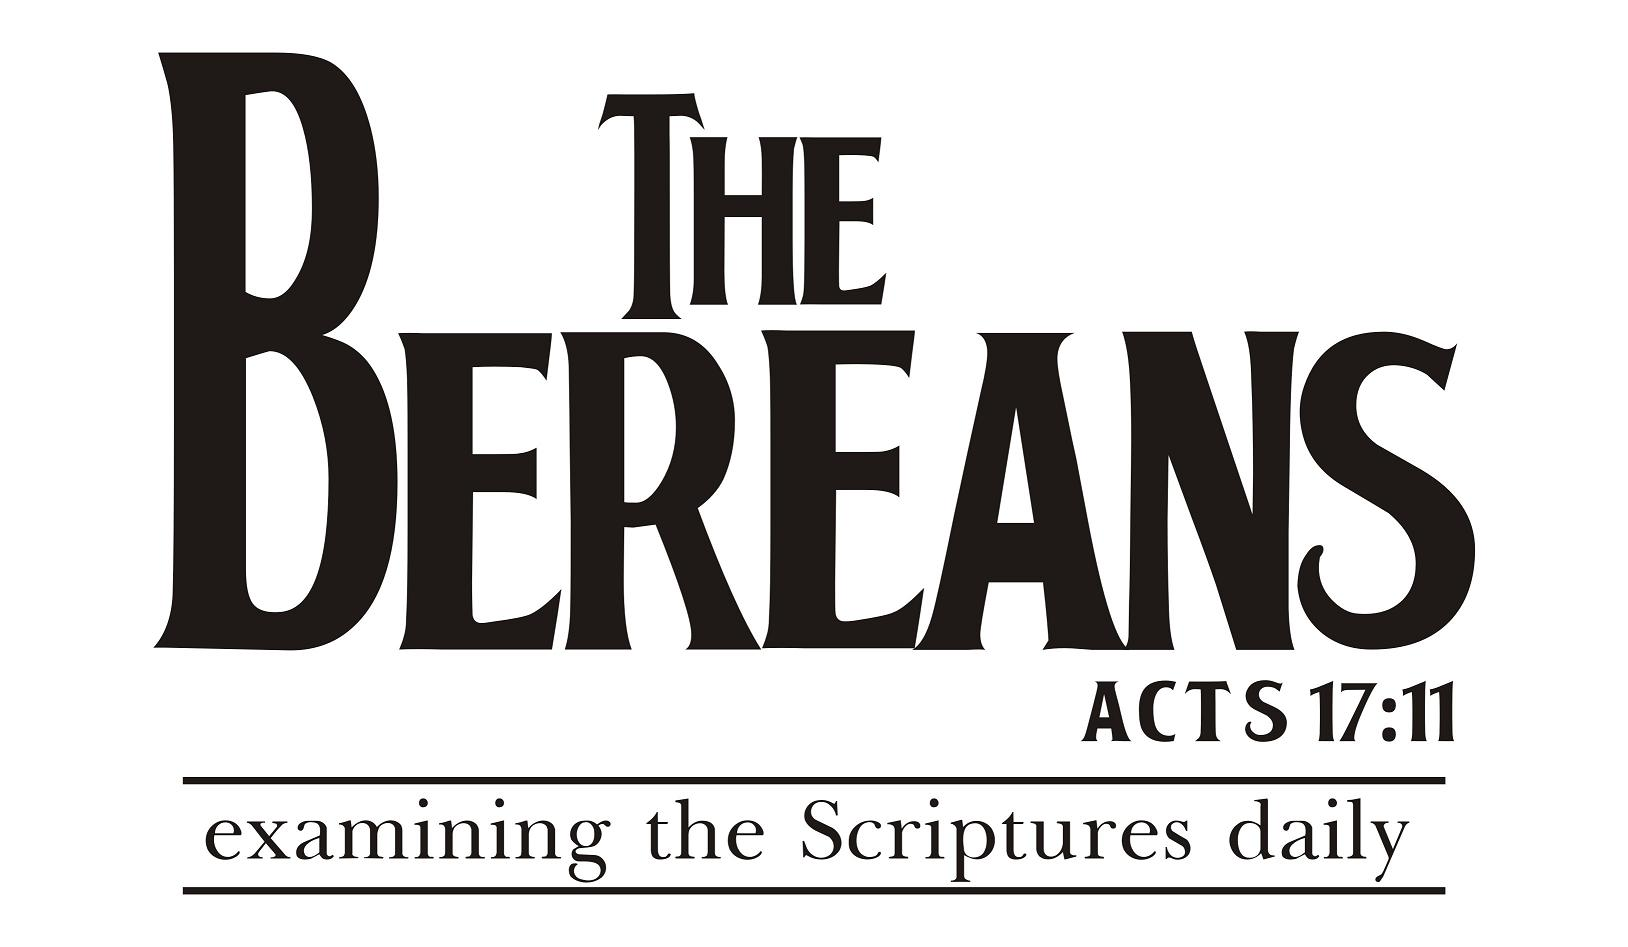 Bereans acts 17